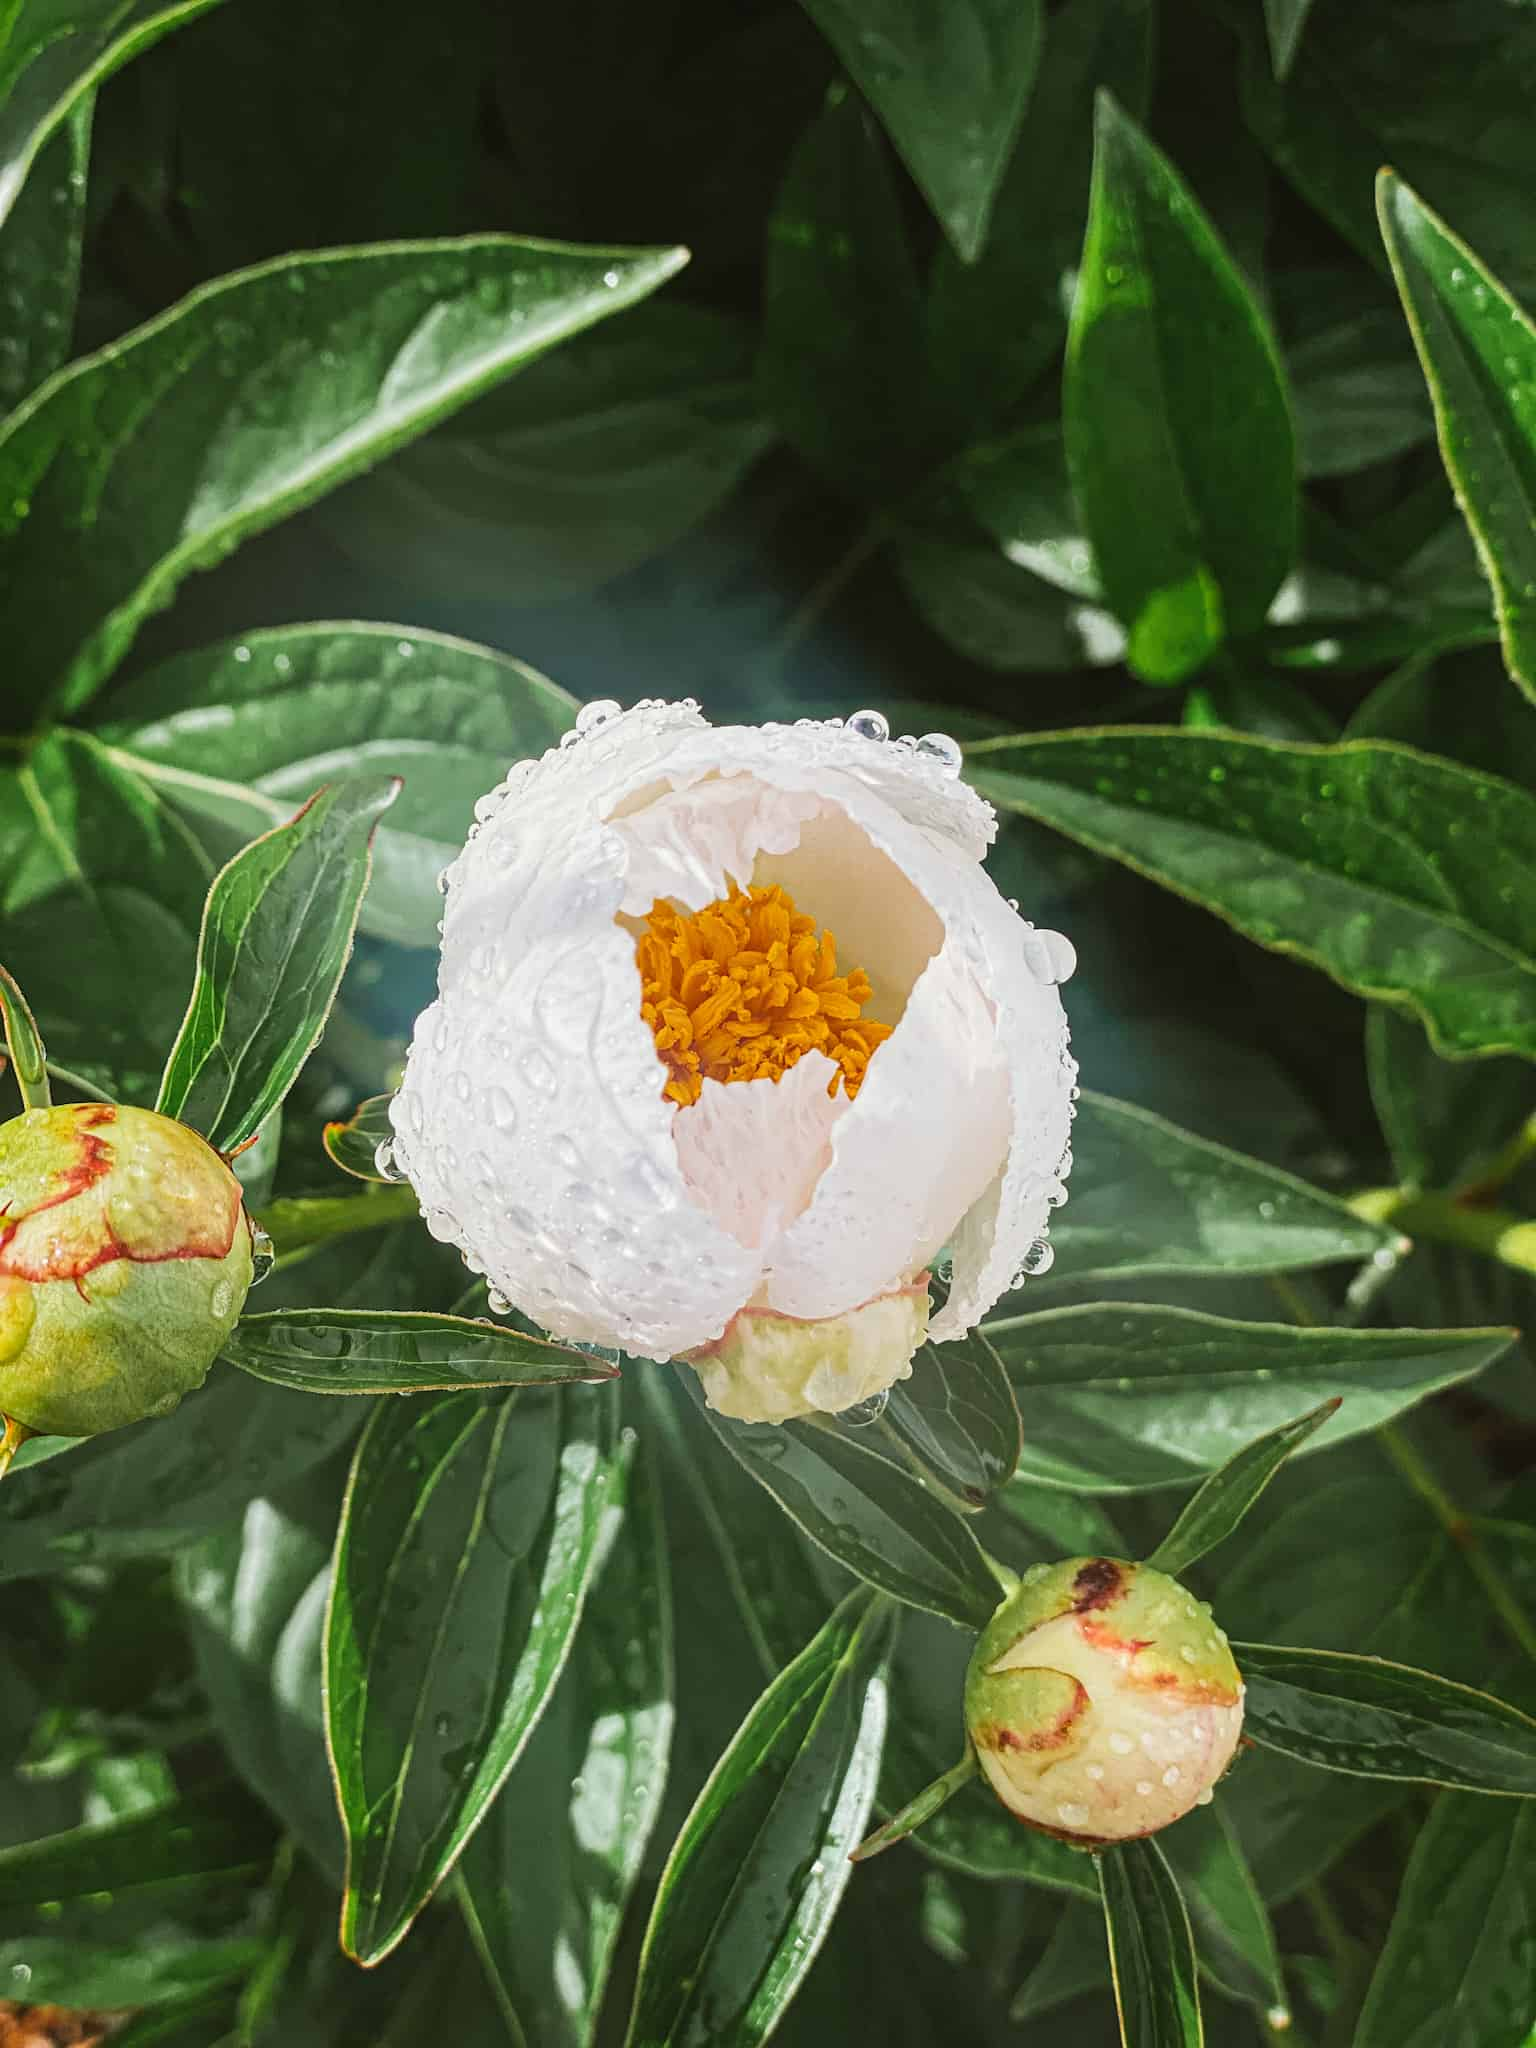 White peony with water droplets growing in in early morning garden